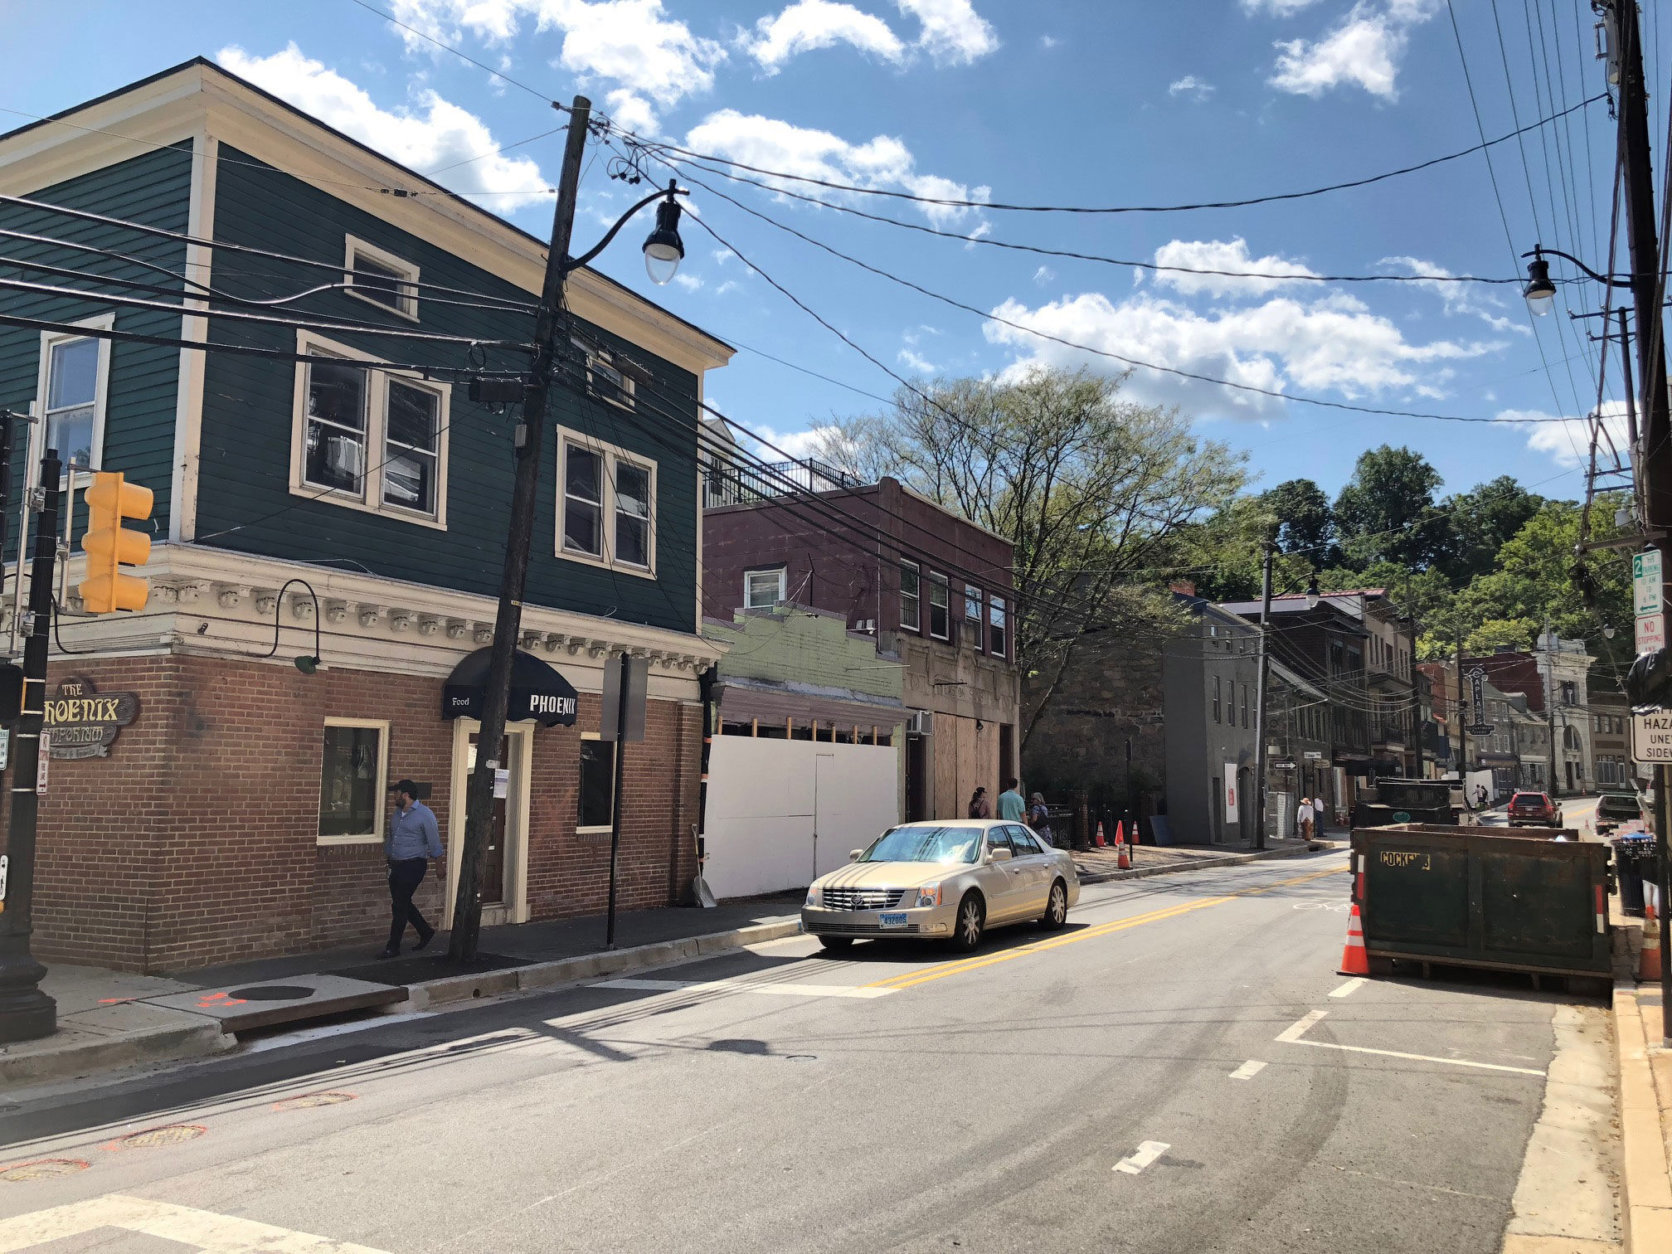 An aggressive new plan to lessen the flood risk in Ellicott City includes the removal of nearly 20 buildings to allow for better drainage. (WTOP/John Aaron)